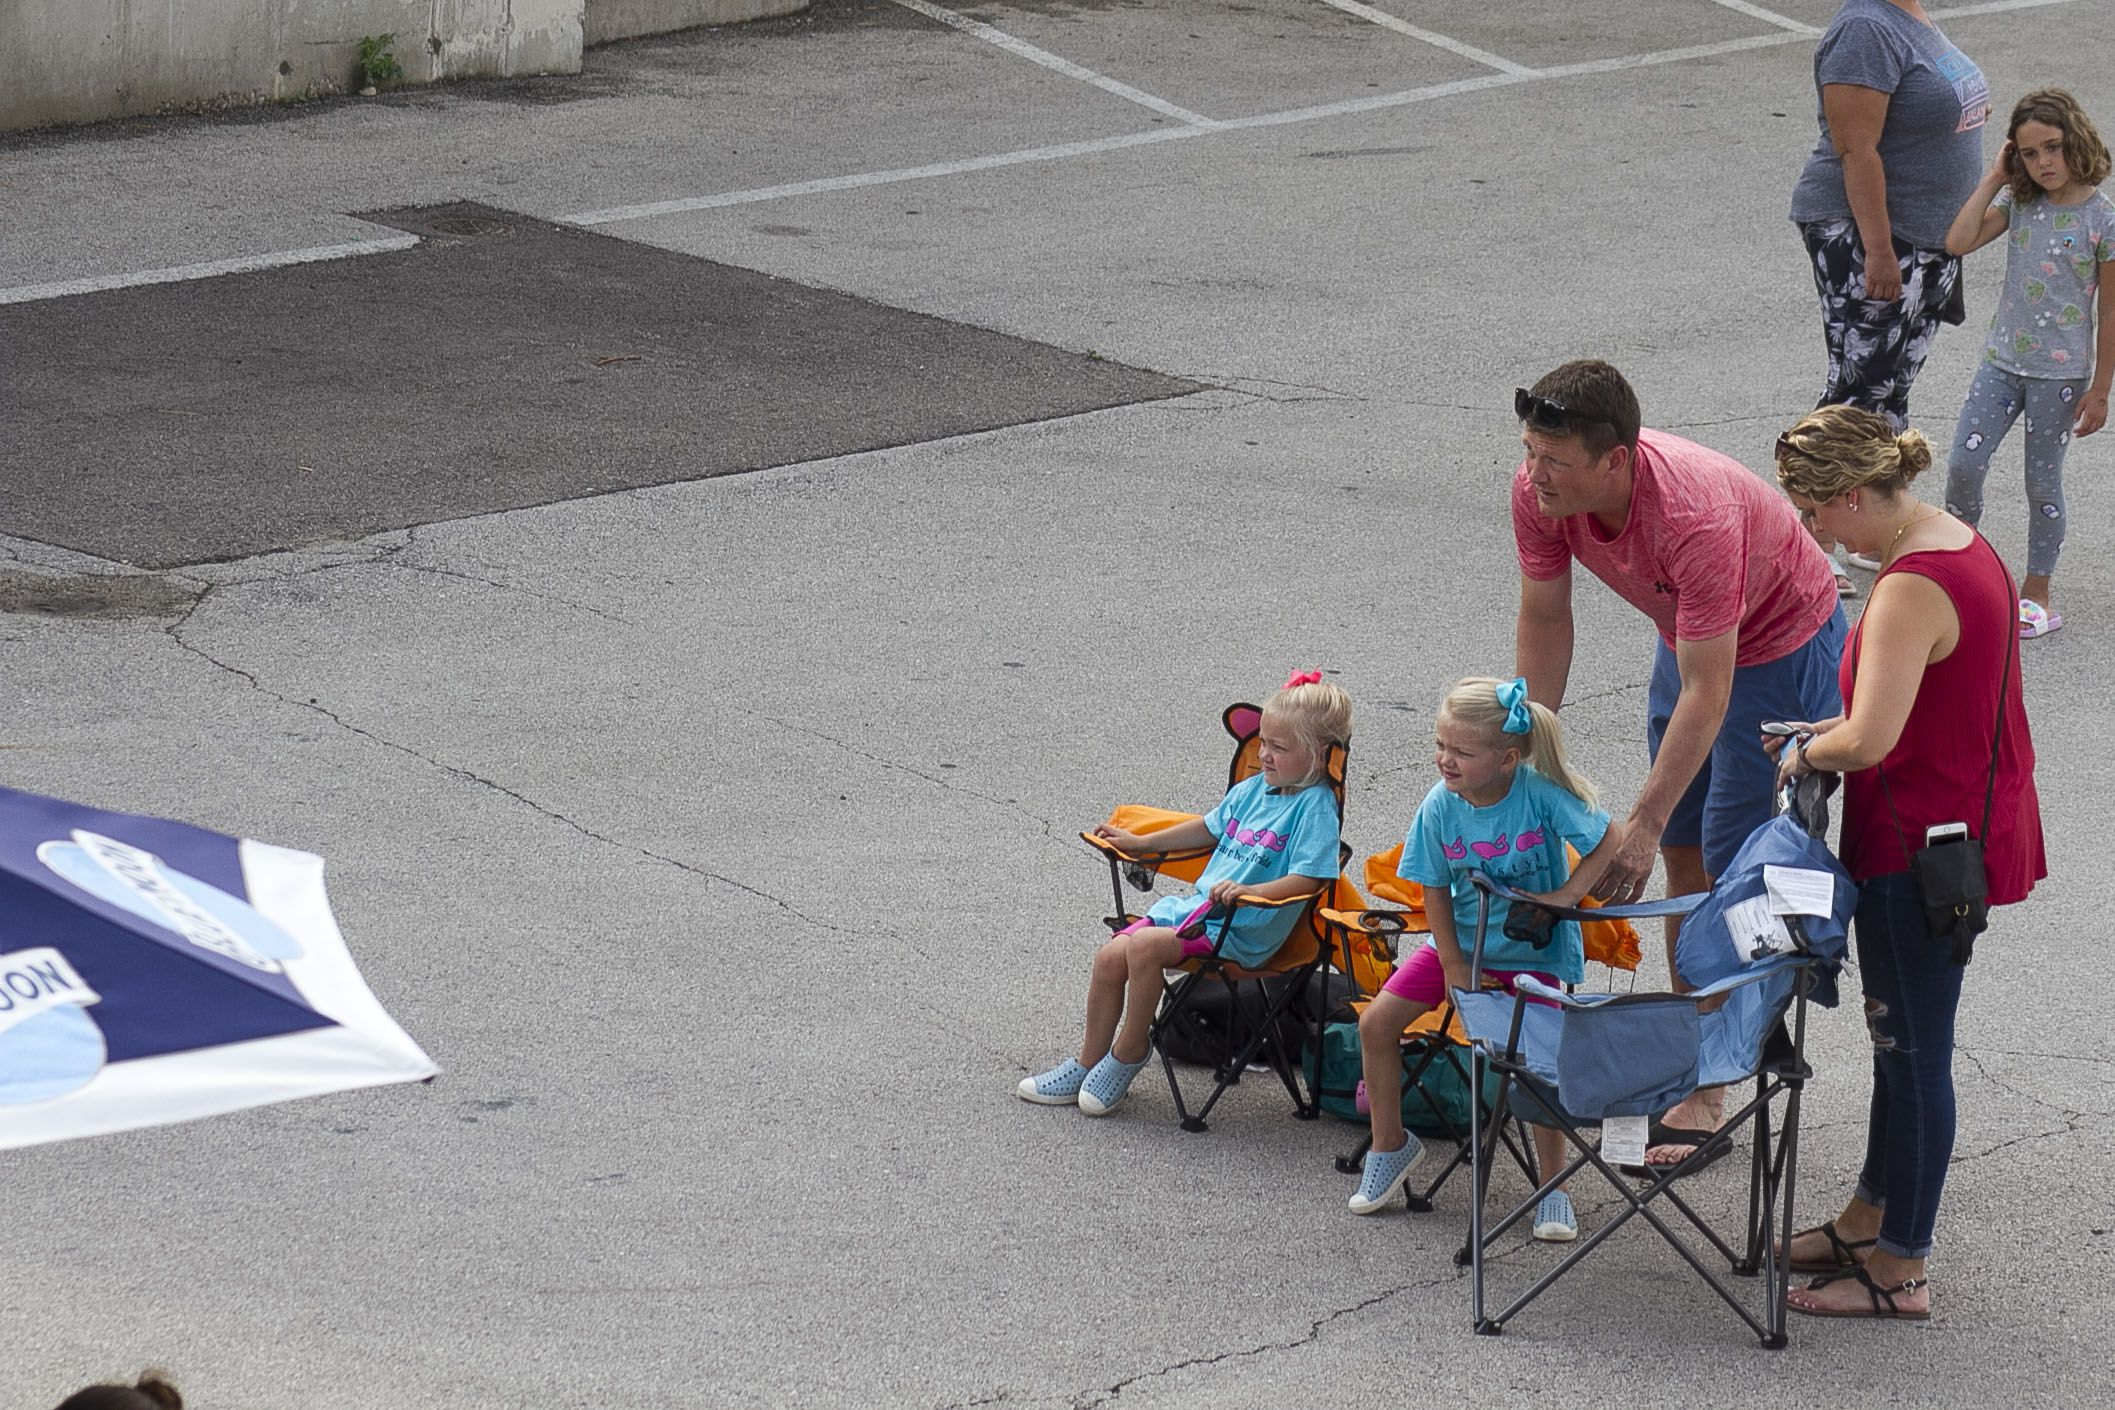 Yorkville residents brought their own seating and visited area restaurants to hear the music coming from The Law Office during the first night of the annual Summer Solstice music festival June 25.